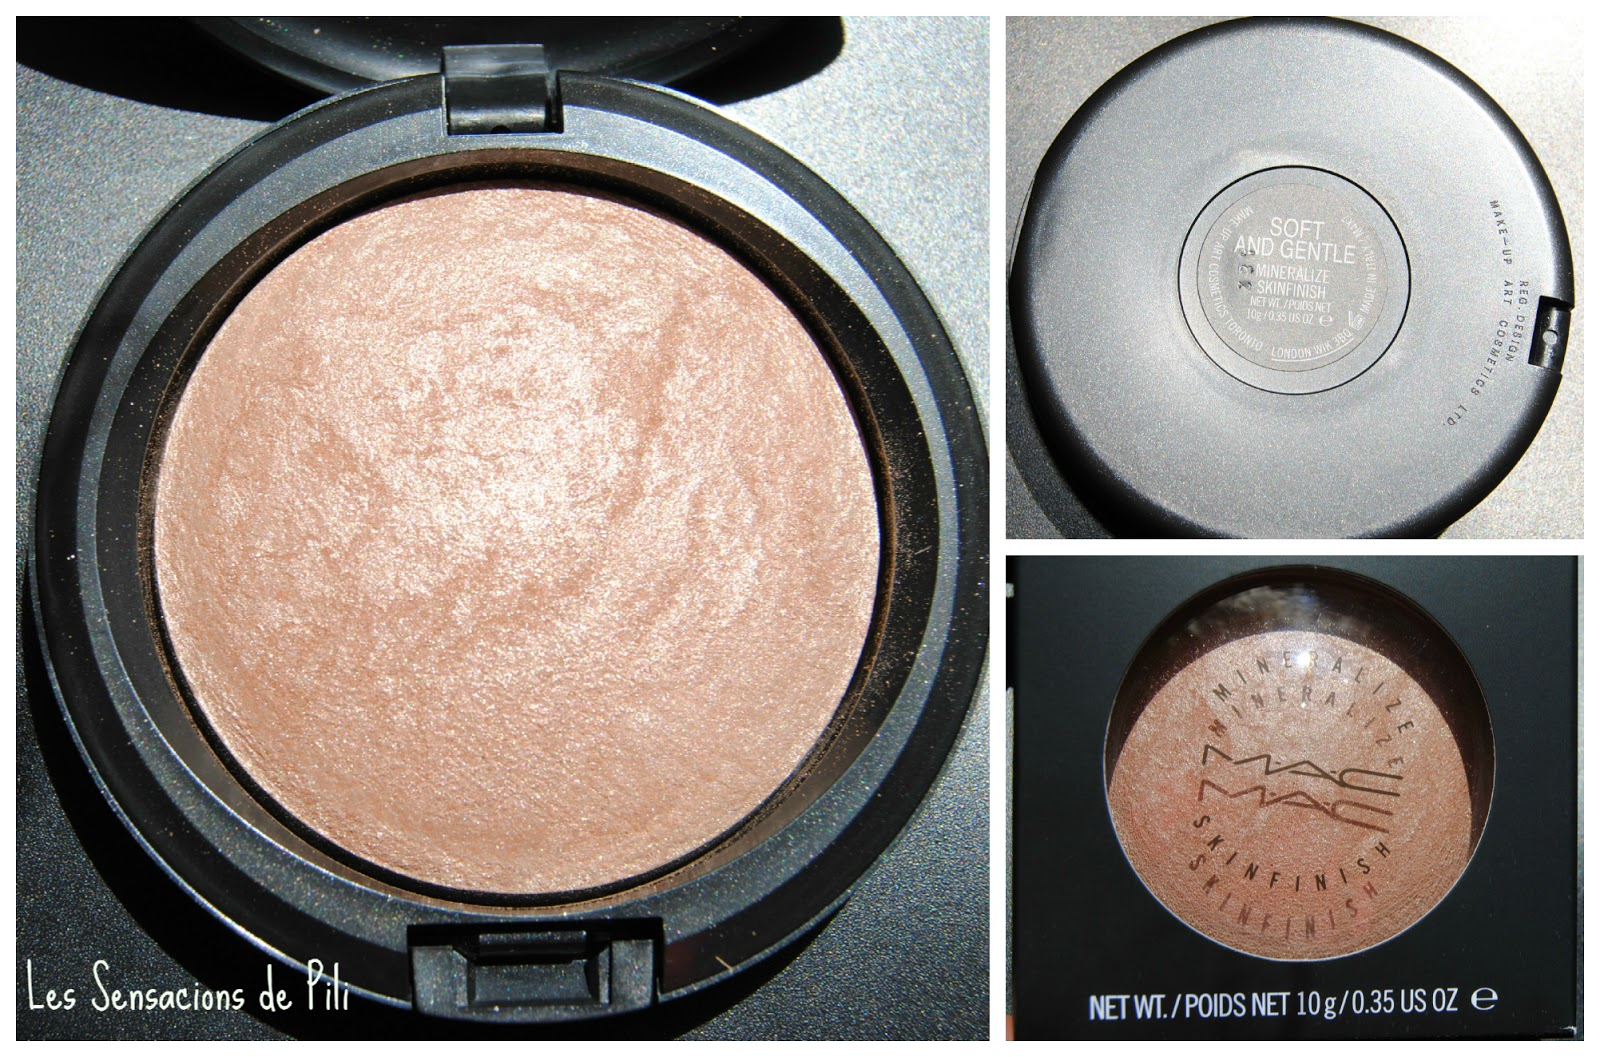 Iluminadores Mac Les Sensacions De Pili Mineralize Skinfinish Soft And